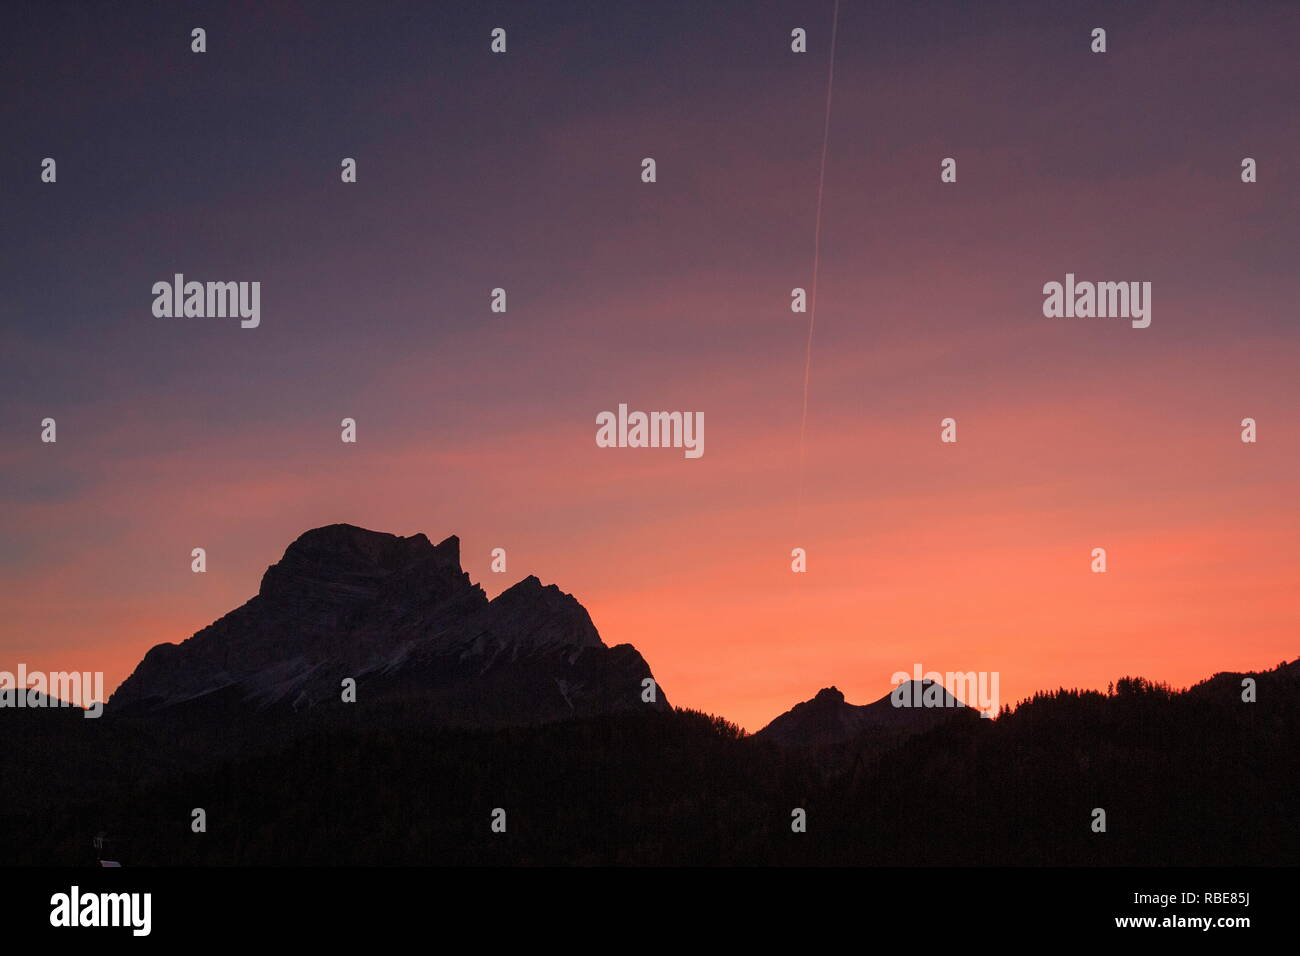 The sky turns pink at sunset on the rocky summit of Mount Pelmo Cadore Zoldo Dolomites Veneto Italy Europe - Stock Image